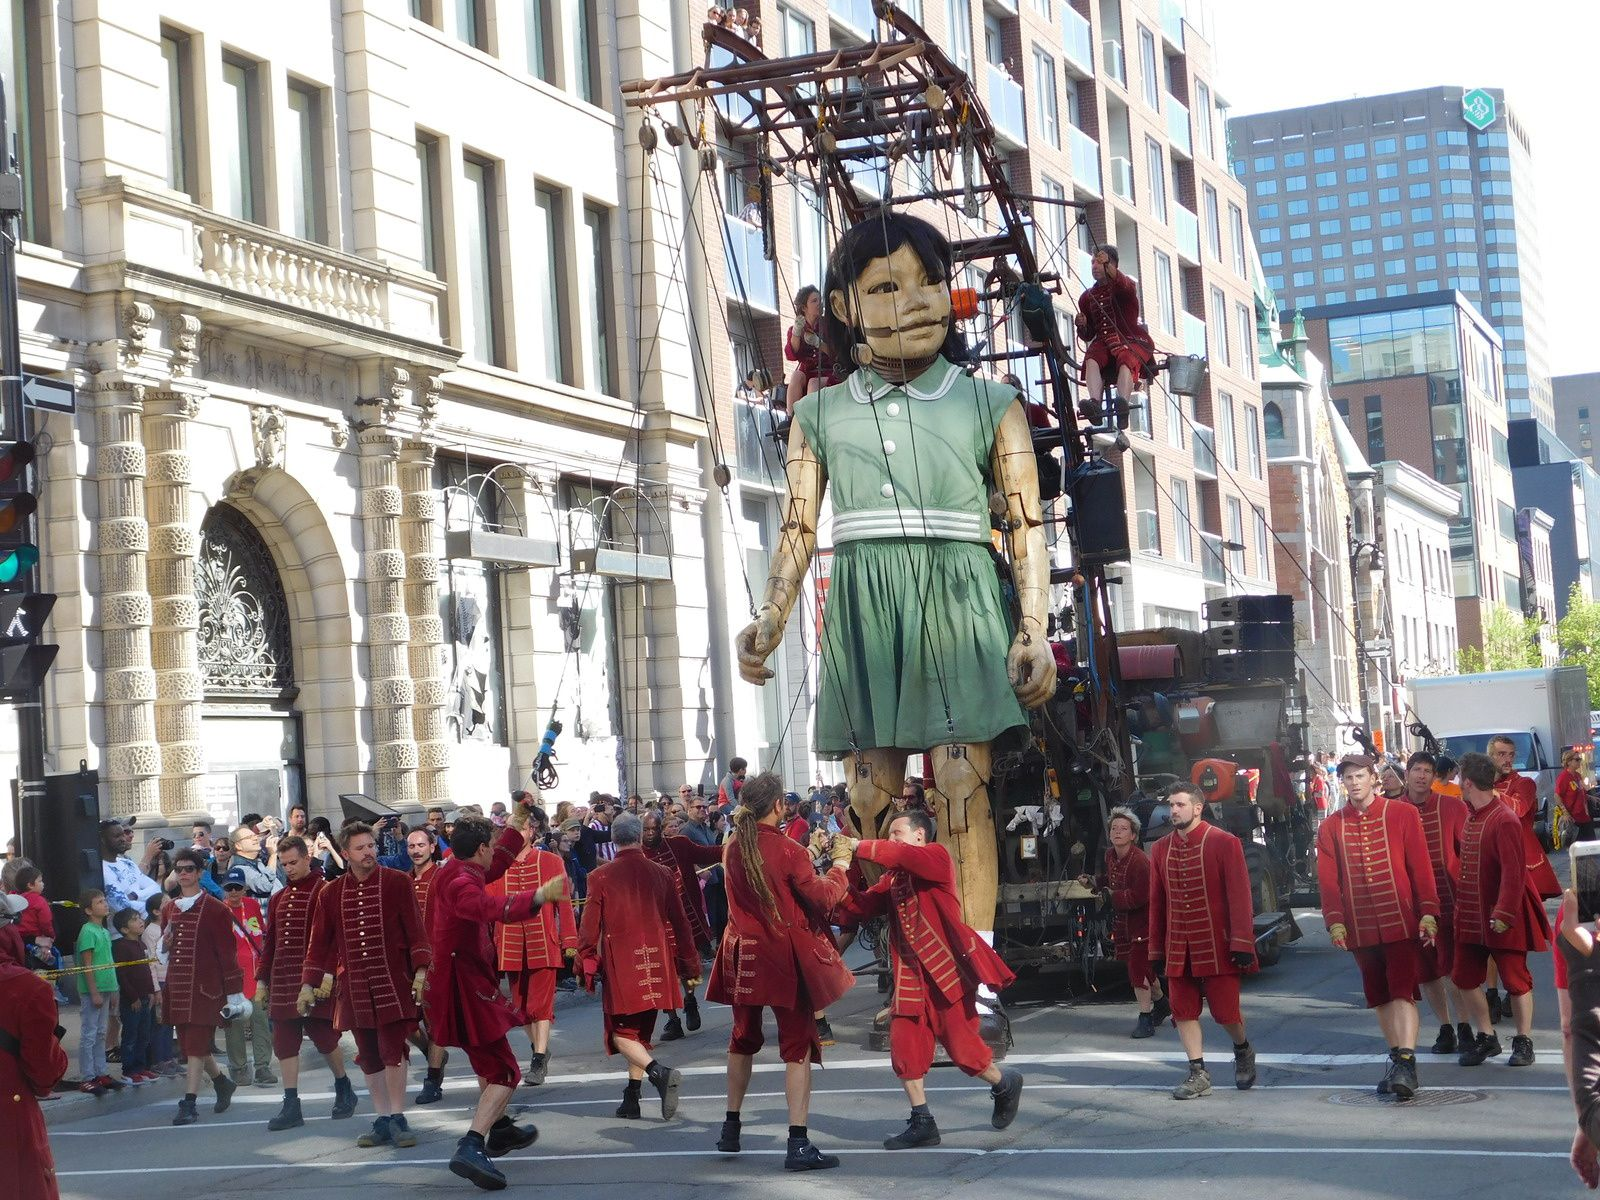 ROYAL DE LUXE A MONTREAL: LA GRANDE INVITATION.